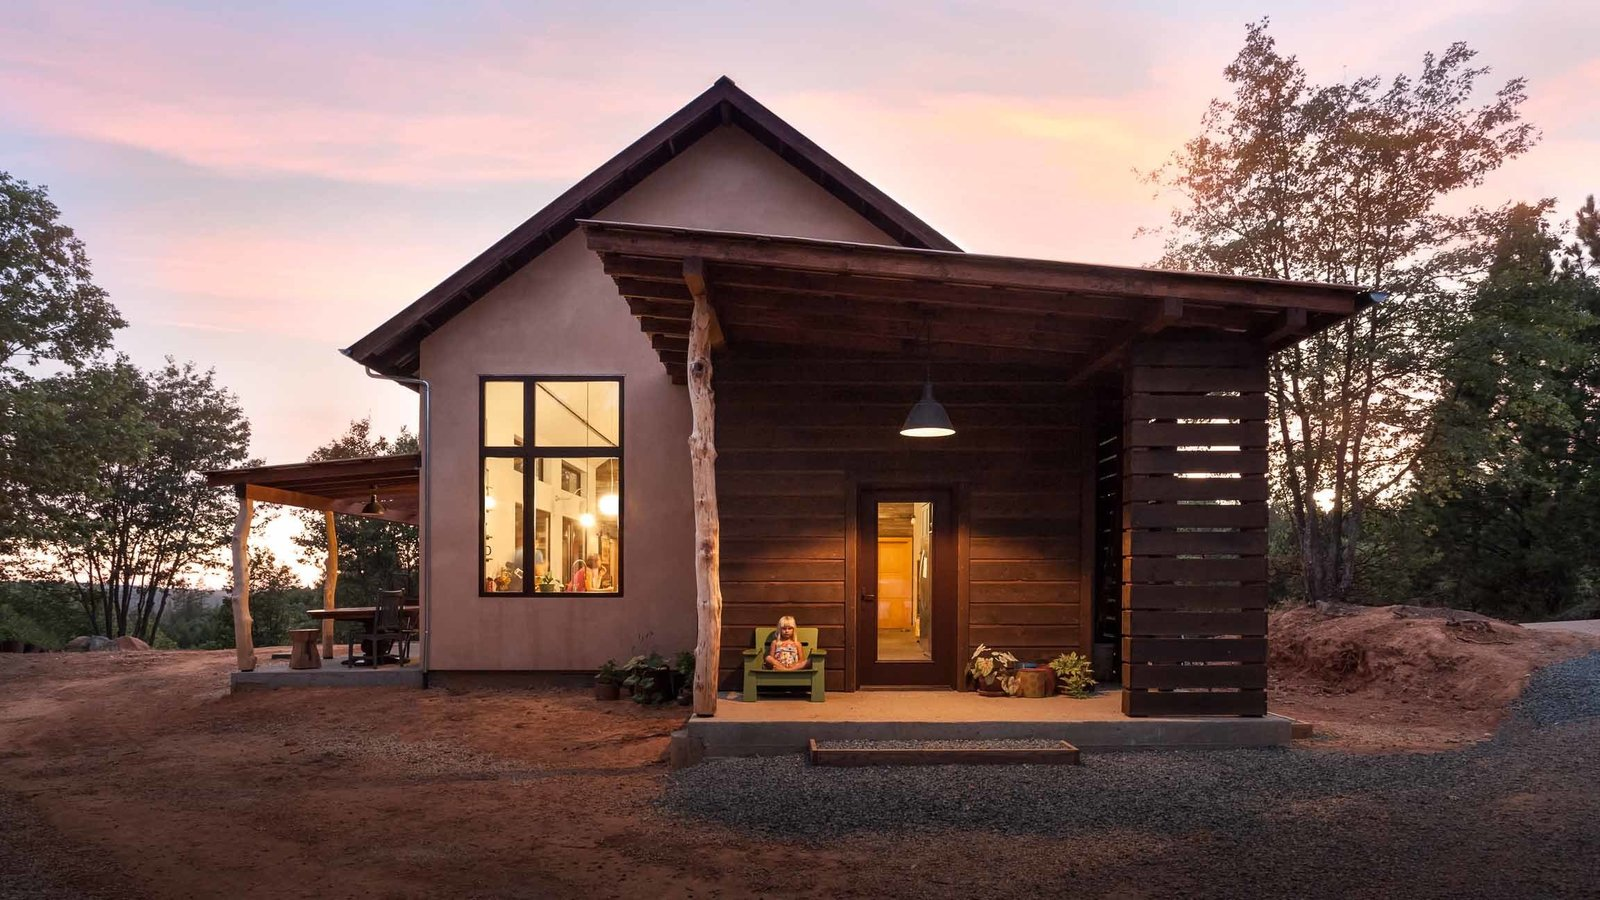 Exterior, House Building Type, and Cabin Building Type A Seattle family tasked Atmosphere Design Build with creating a sustainable dwelling in Nevada City, California, the matriarch's hometown and a historic mining community. The firm's material-driven approach channels the pioneer spirit of the gold rush, without compromising comfort or high-efficiency standards.  California Homes from Don't Let Its Rustic Charm Fool You, This Net-Zero Home Plays for Team Modern